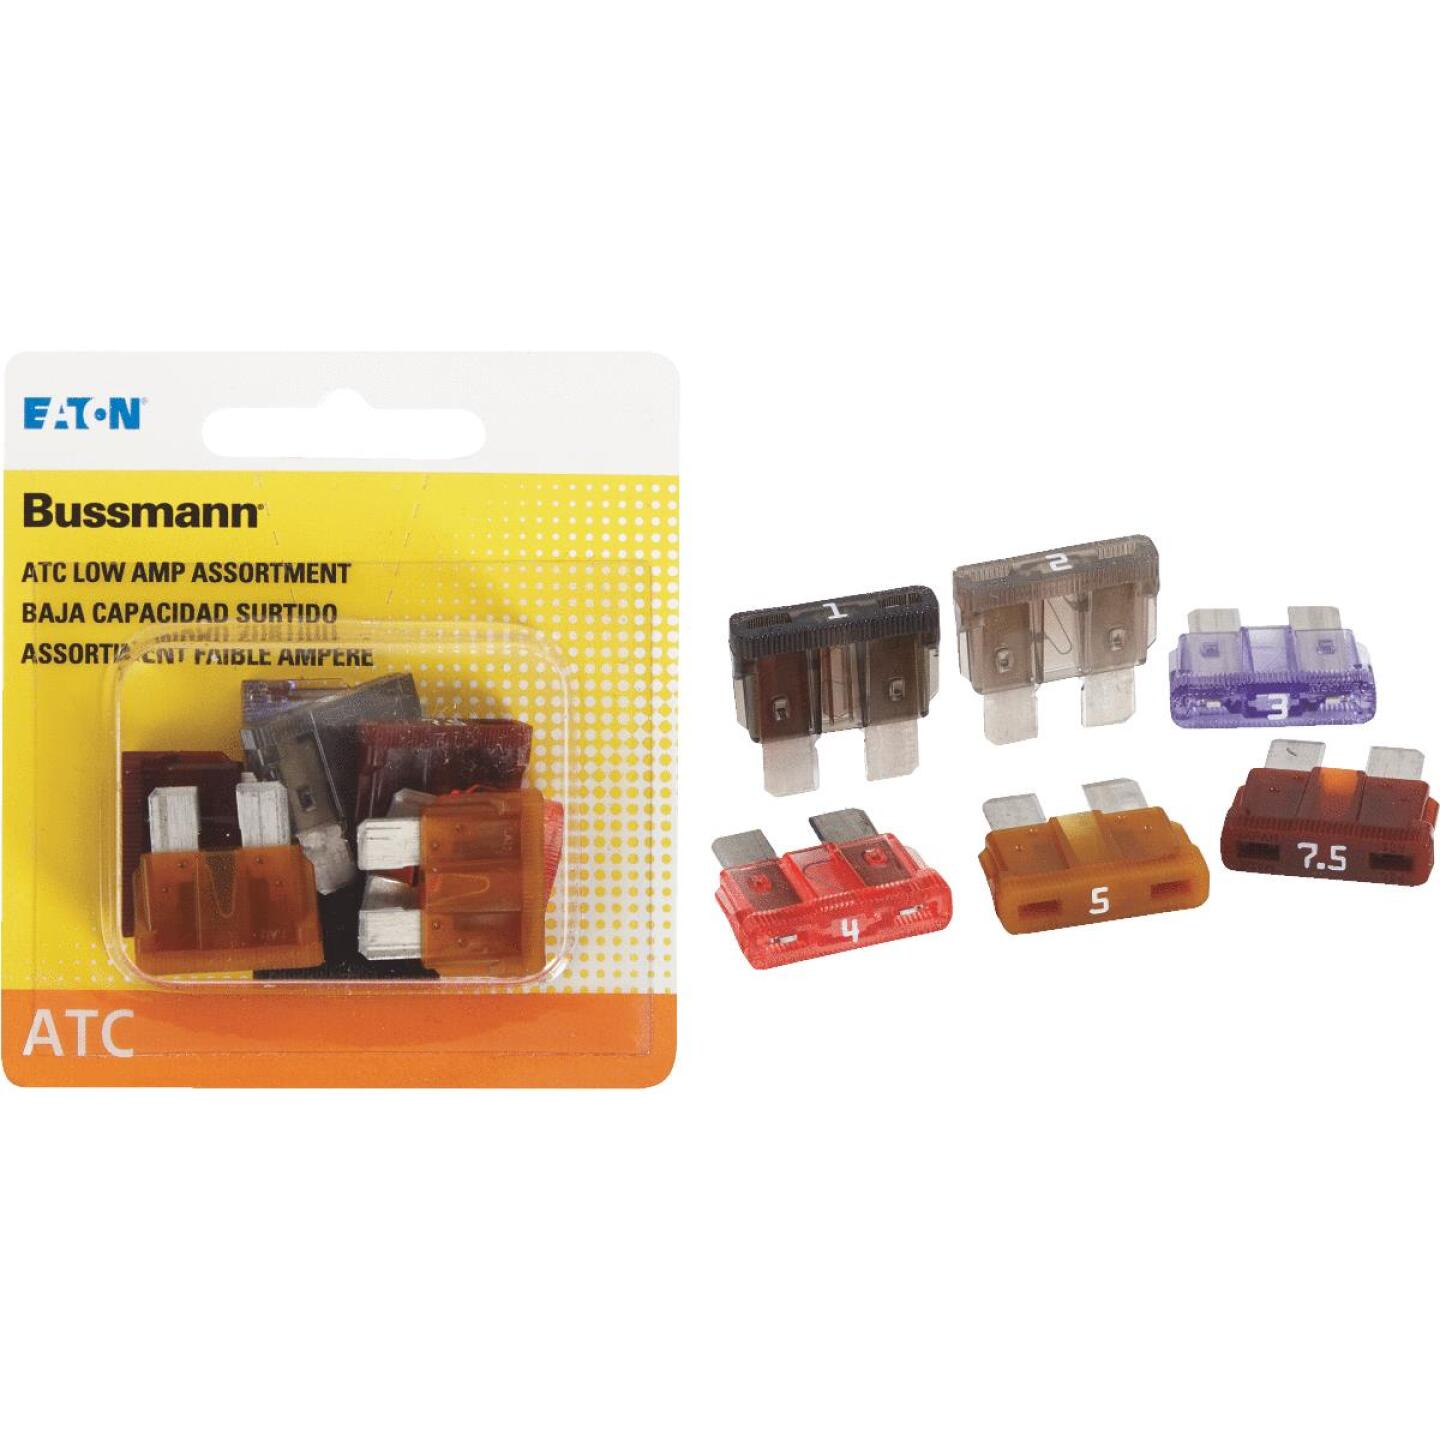 Bussmann ATC Low Amp Fuse Assortment (8-Piece) Image 1